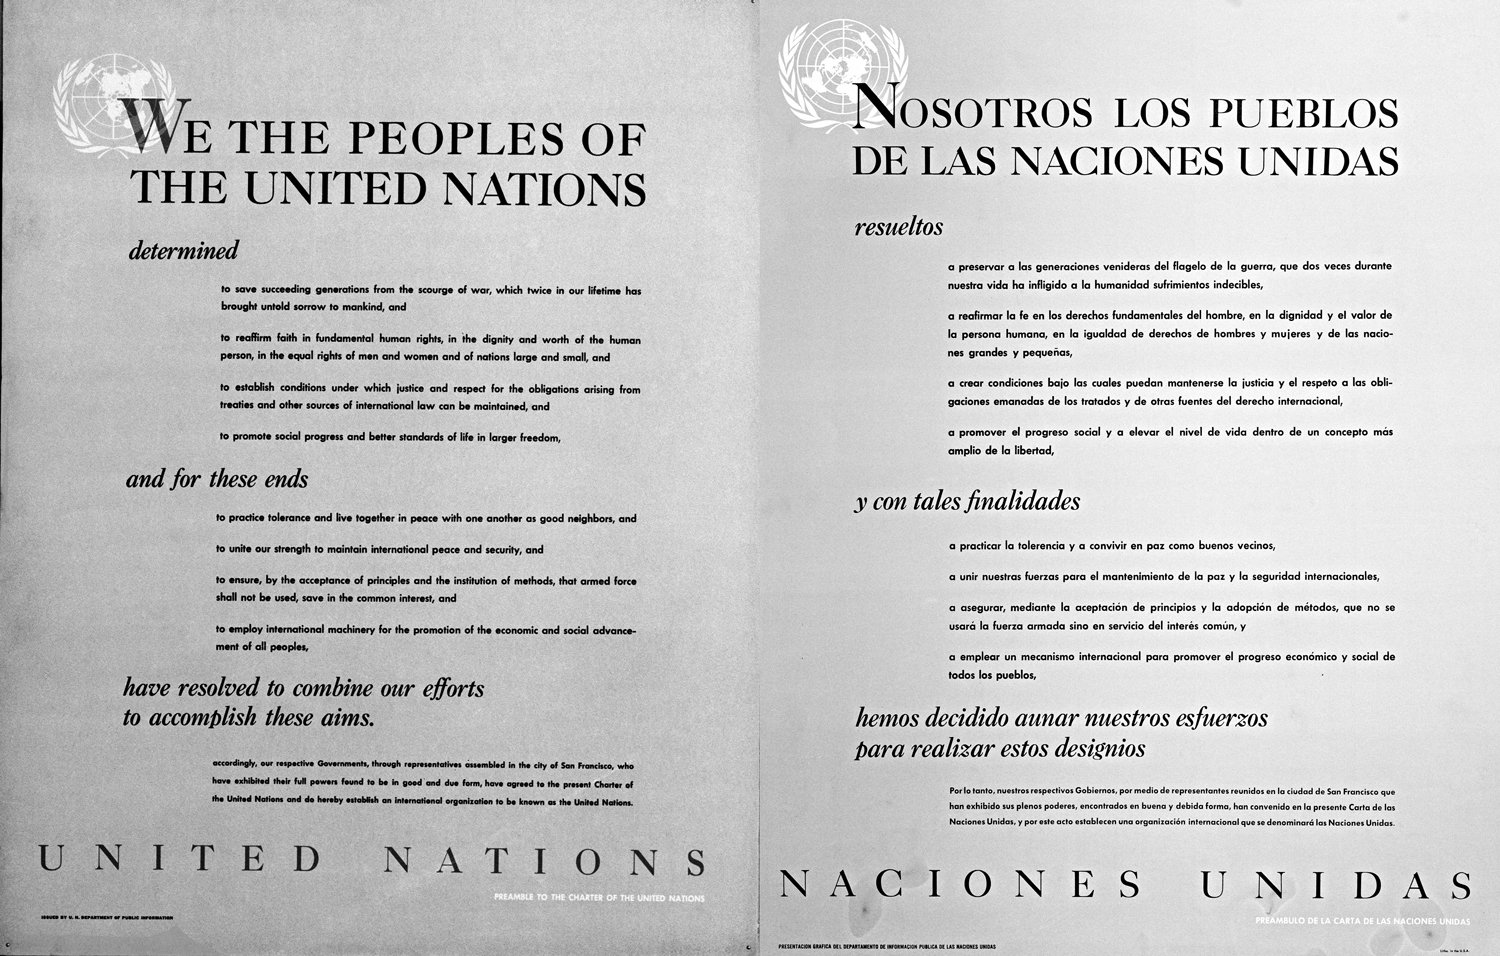 reforming the united nations essay In 2003, the secretary general of the united nations appointed a 16-member commission to assess the threats to worldwide security in the twenty-first century the commission came back with a number of recommendations for reforming the un itself.